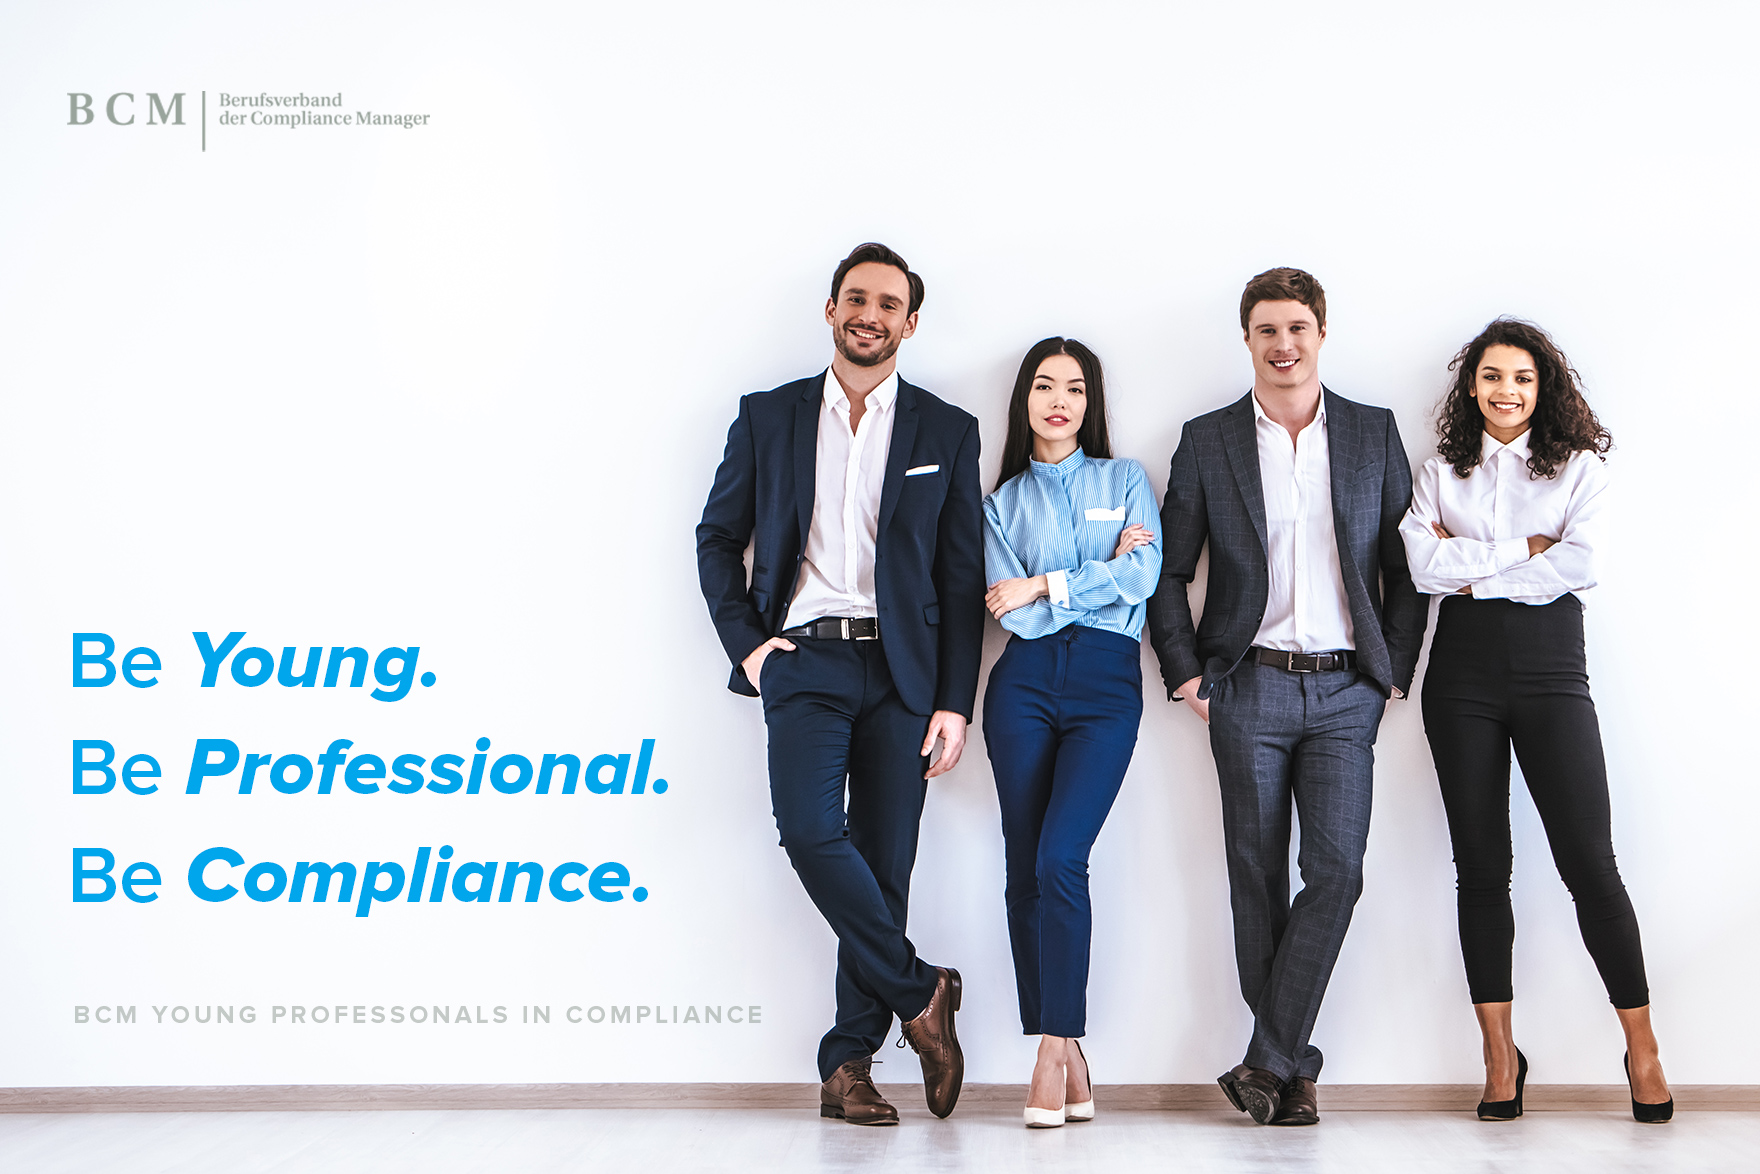 BCM Young Professionals in Compliance